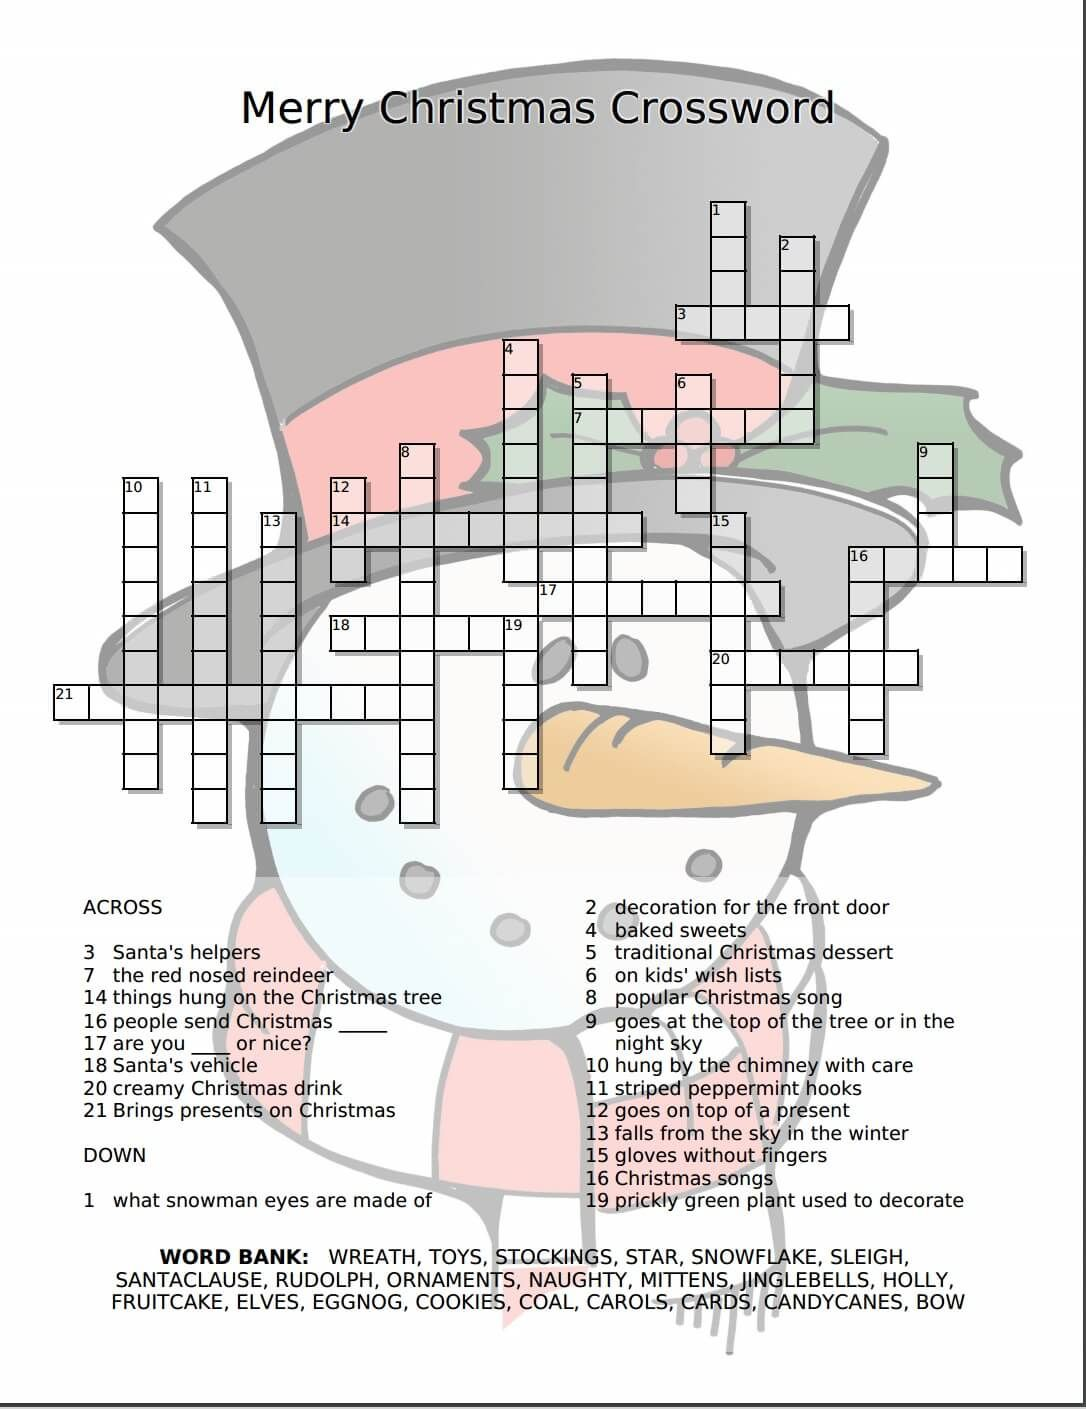 image about Christmas Crosswords Printable titled Merry Xmas Crossword Free of charge Printable FREEBIES GALORE